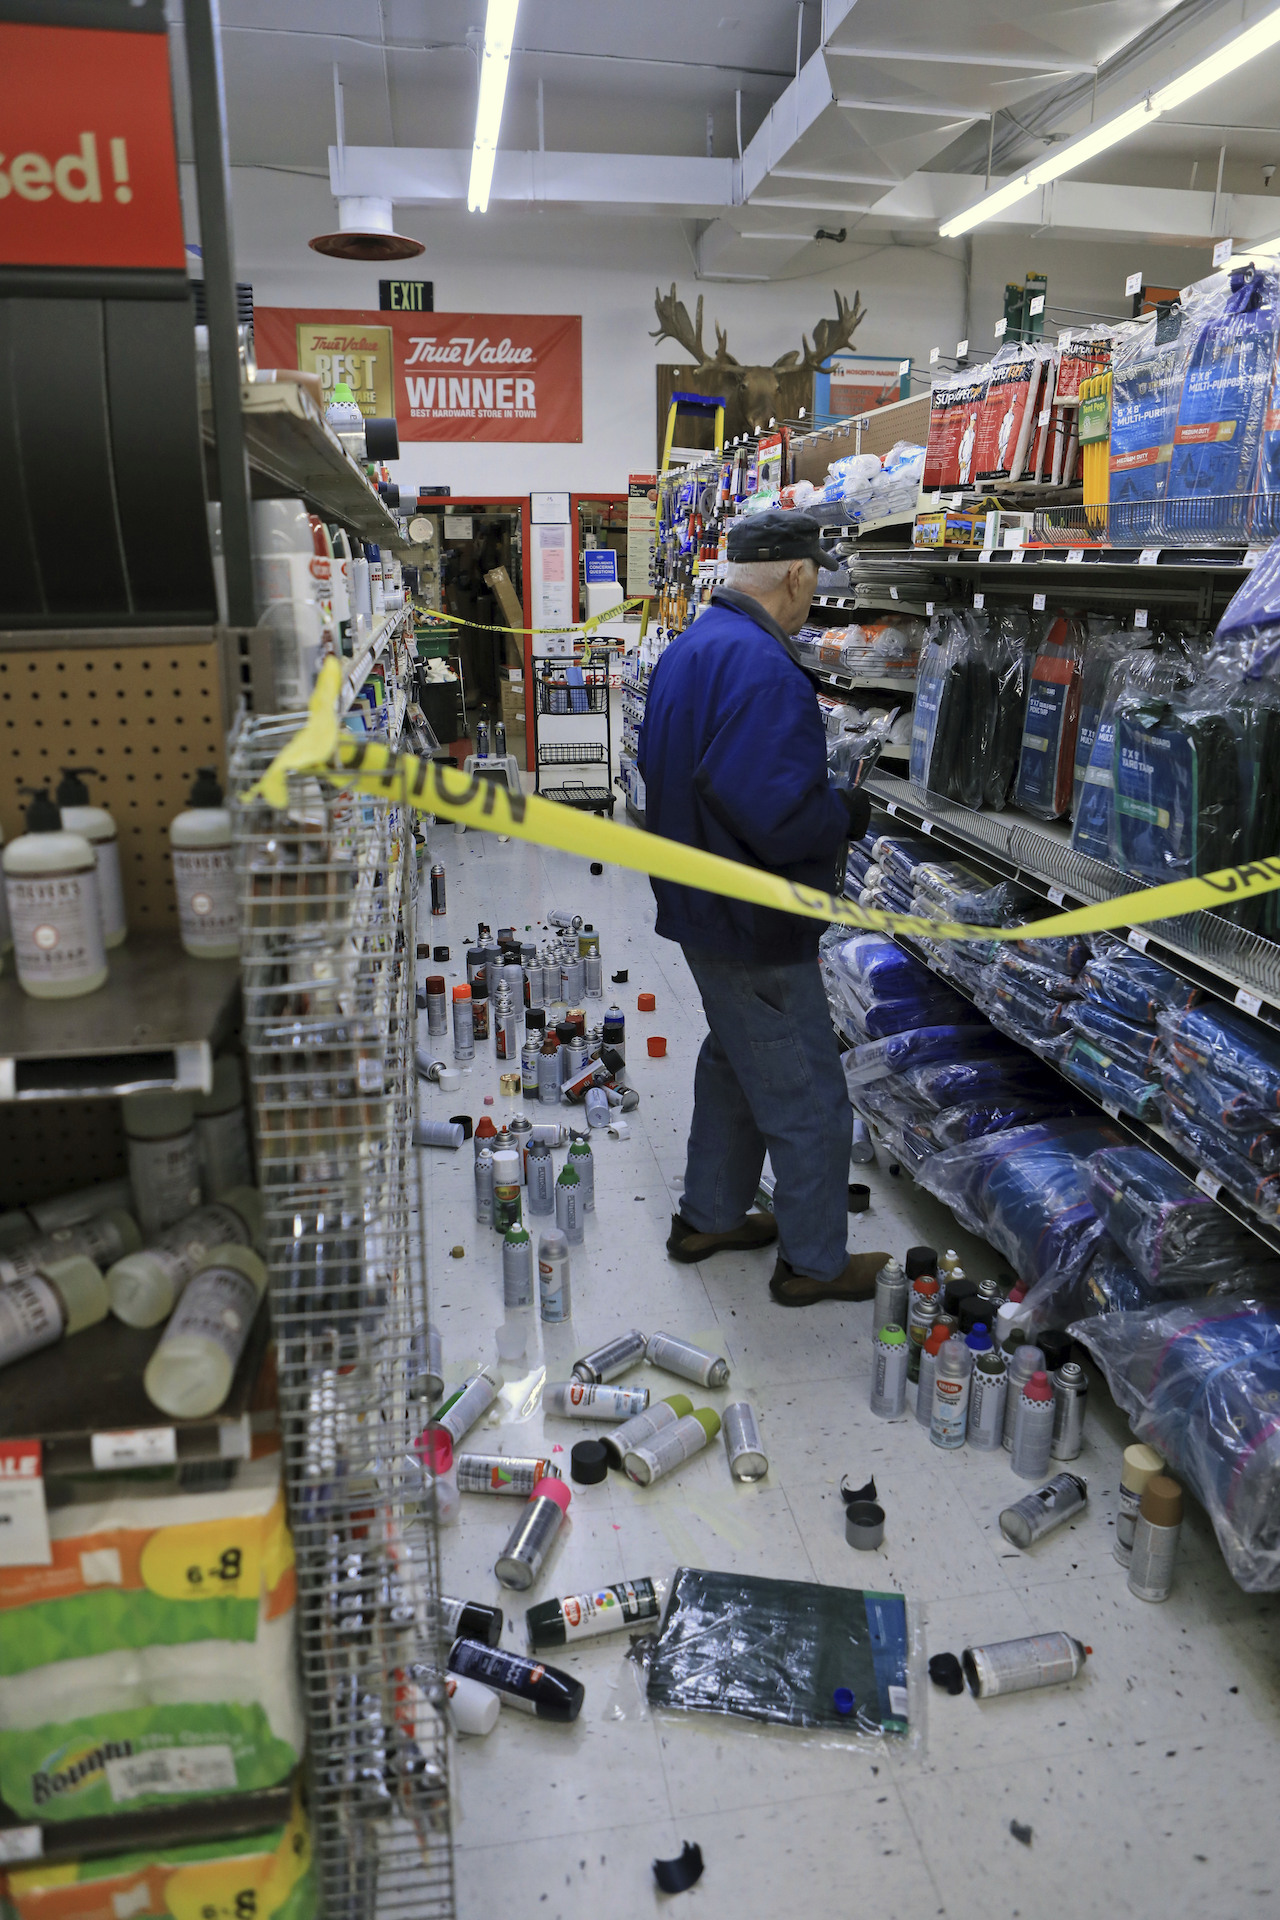 "<div class=""meta image-caption""><div class=""origin-logo origin-image ap""><span>AP</span></div><span class=""caption-text"">A customer at Anchorage True Value hardware store shops in the partially cleaned-up paint aisle after an earthquake Friday morning, Nov. 30, 2018, in Anchorage, Alaska. (AP Photo/Dan Joling)</span></div>"